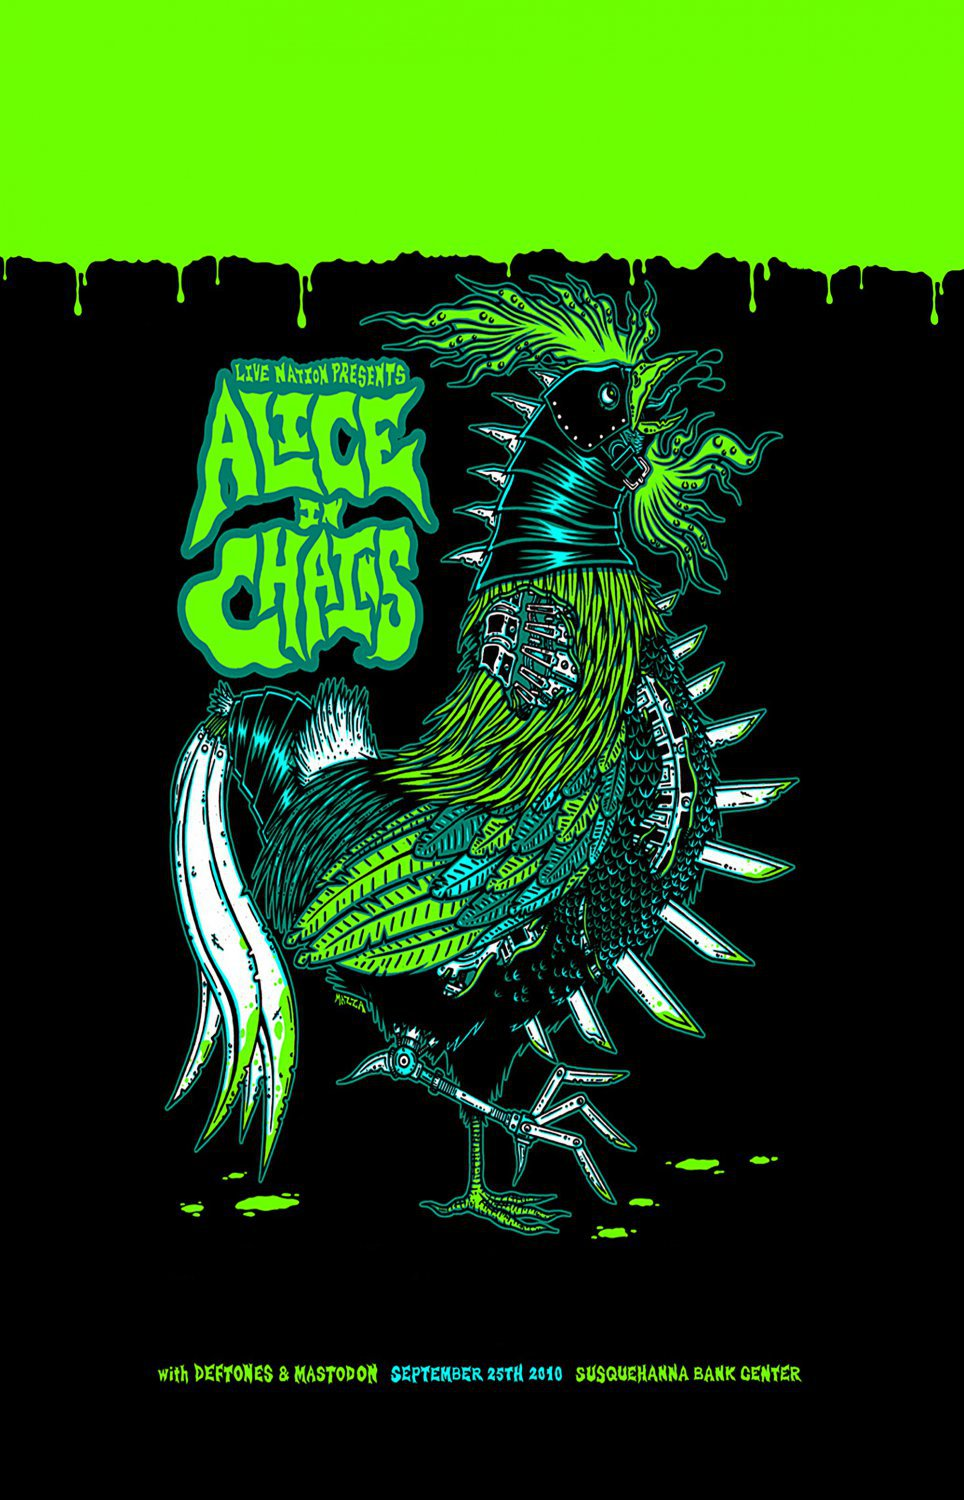 Alice in Chains Concert Tour  13x19 inches Poster Print